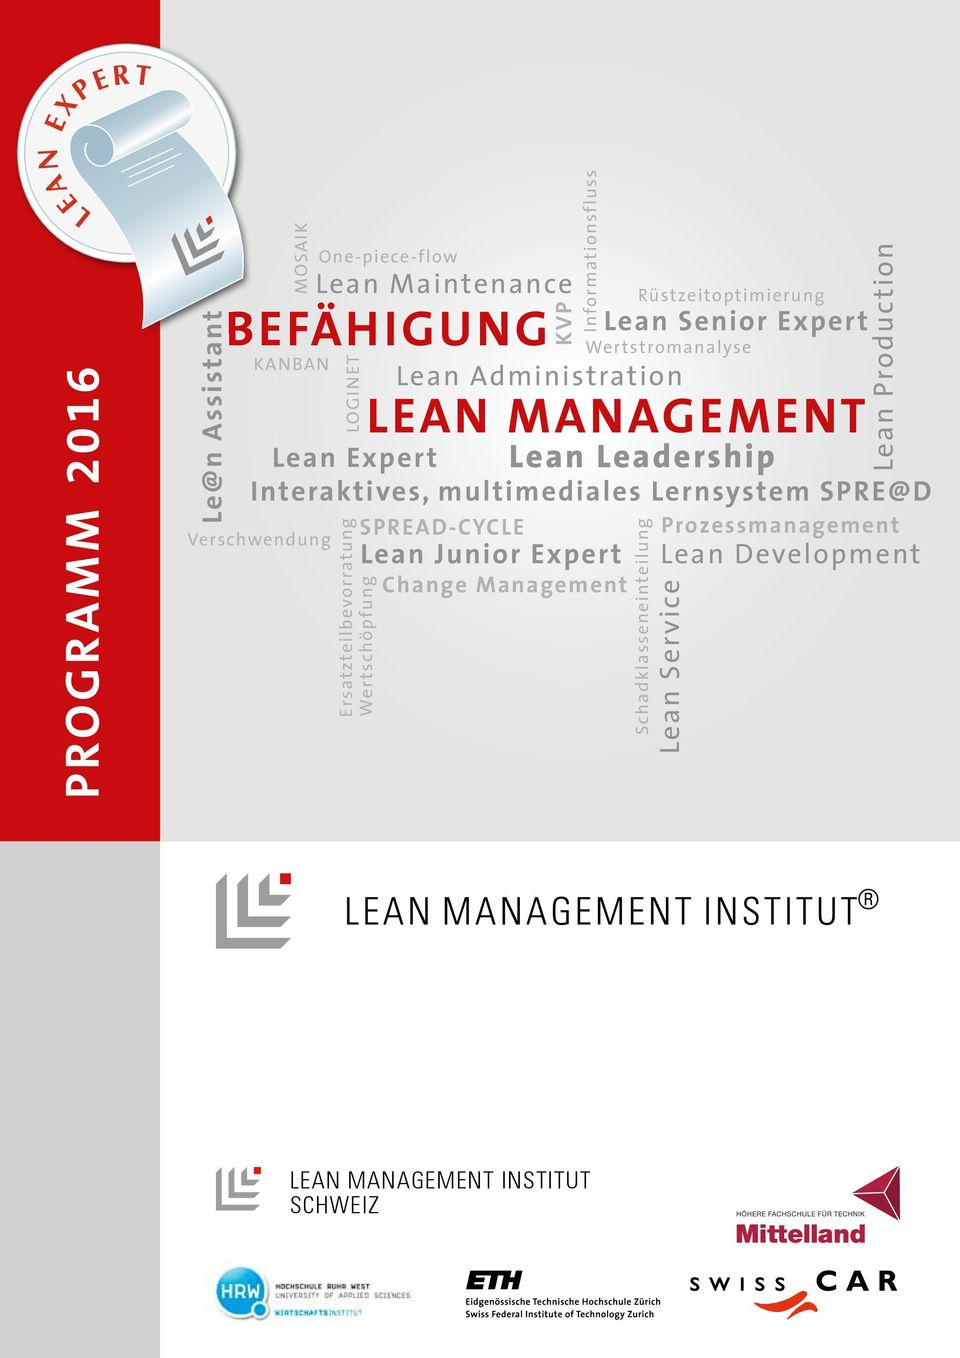 Wertschöpfung SPREAD-CYCLE Informationsfluss Lean Junior Expert Change Management Rüstzeitoptimierung Lean Senior Expert